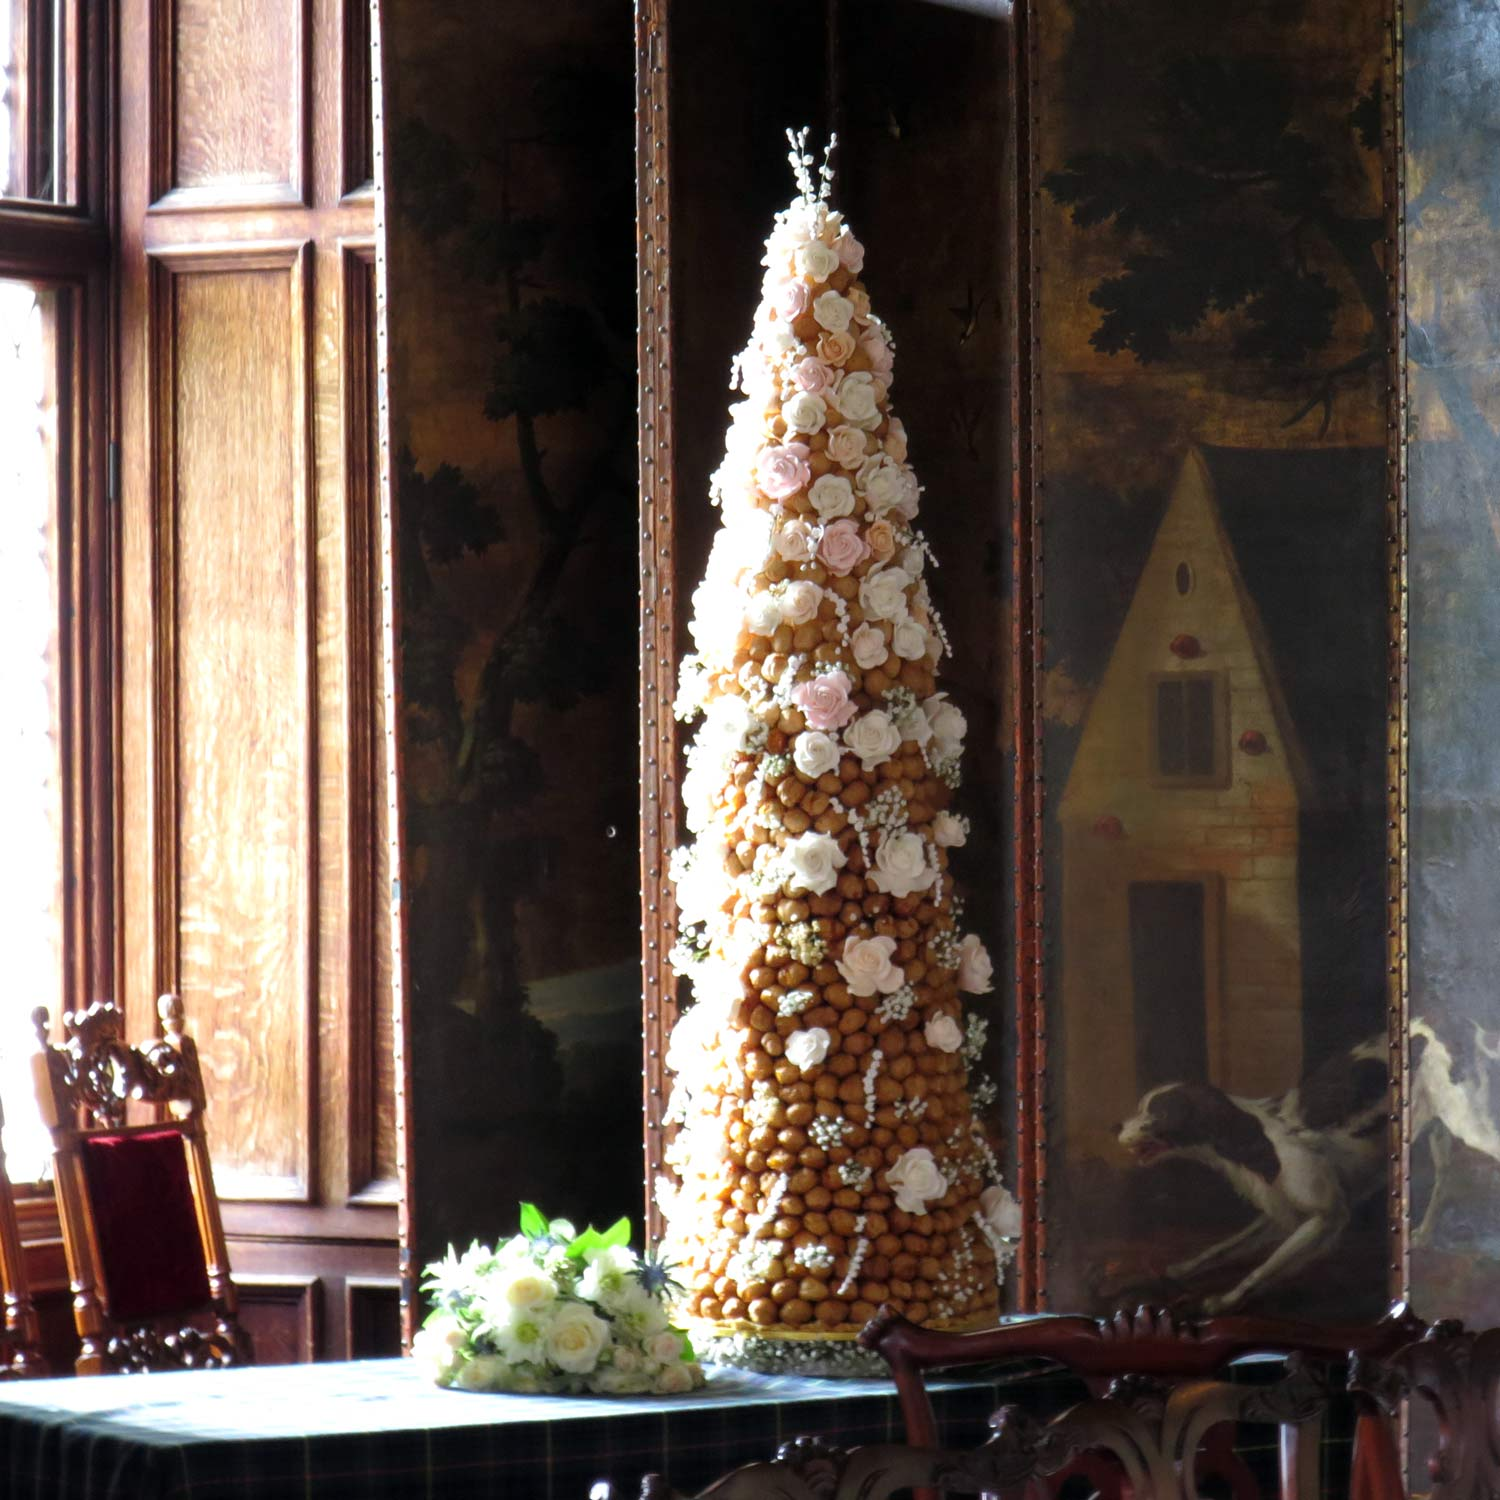 Croquembouche Decorated with Handcrafted Sugar Flowers